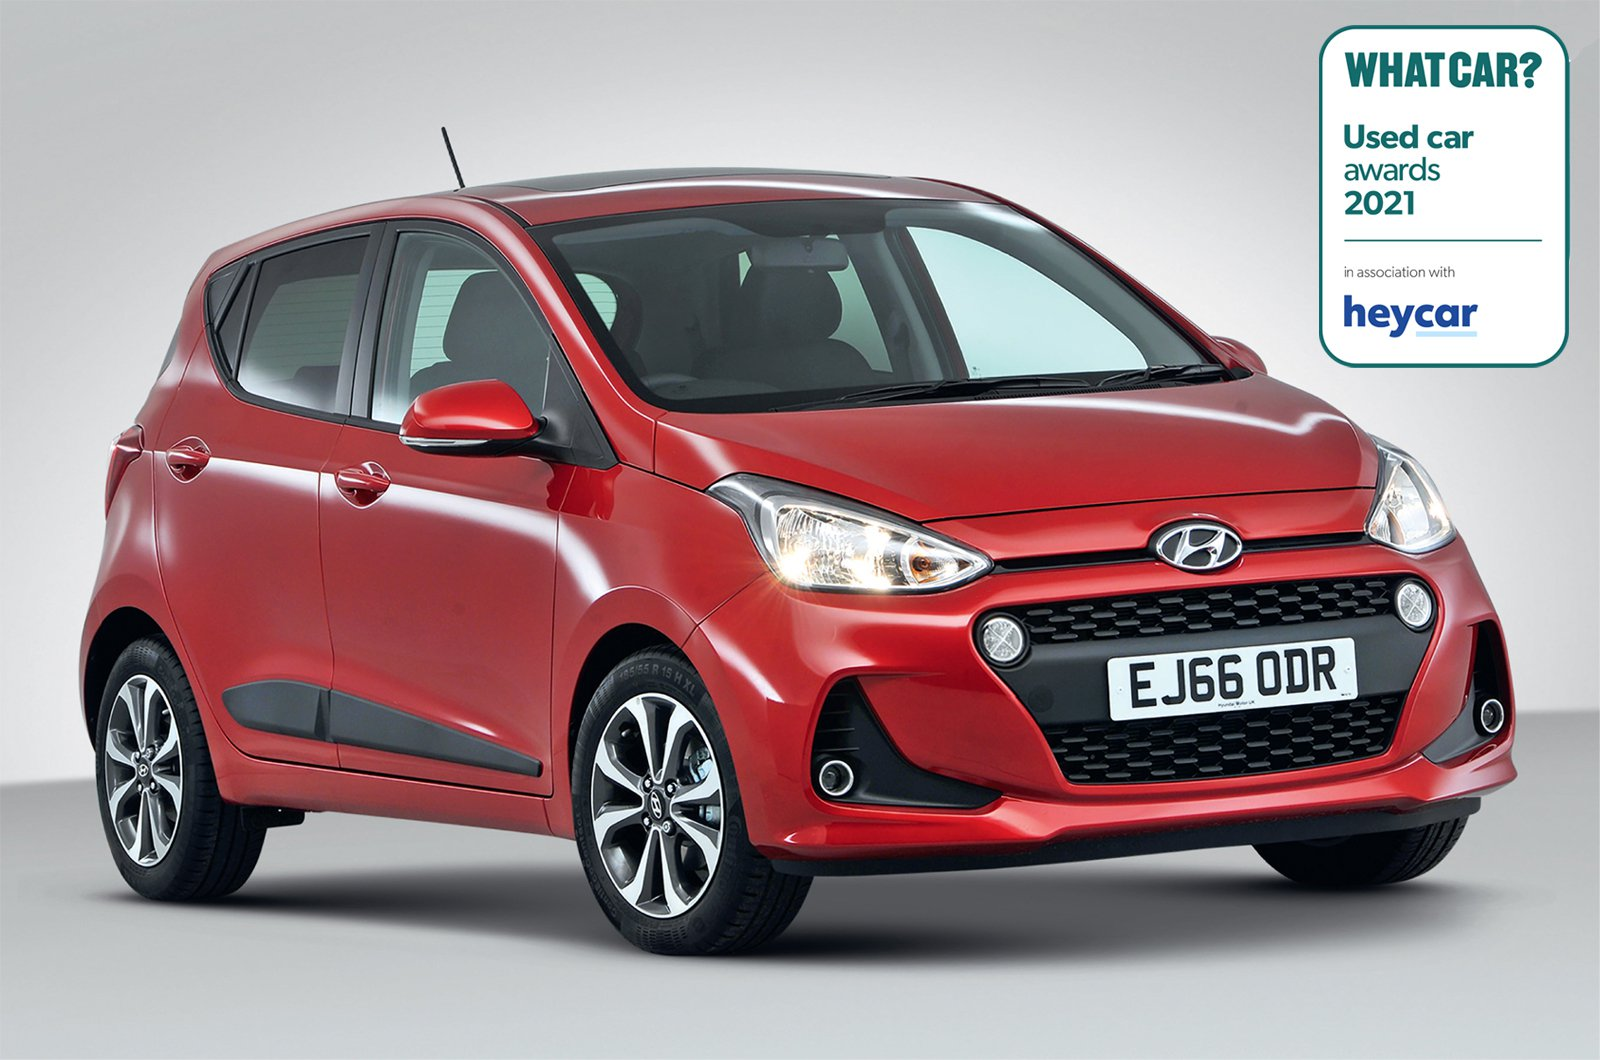 Used Car Awards 2021 - Hyundai i10